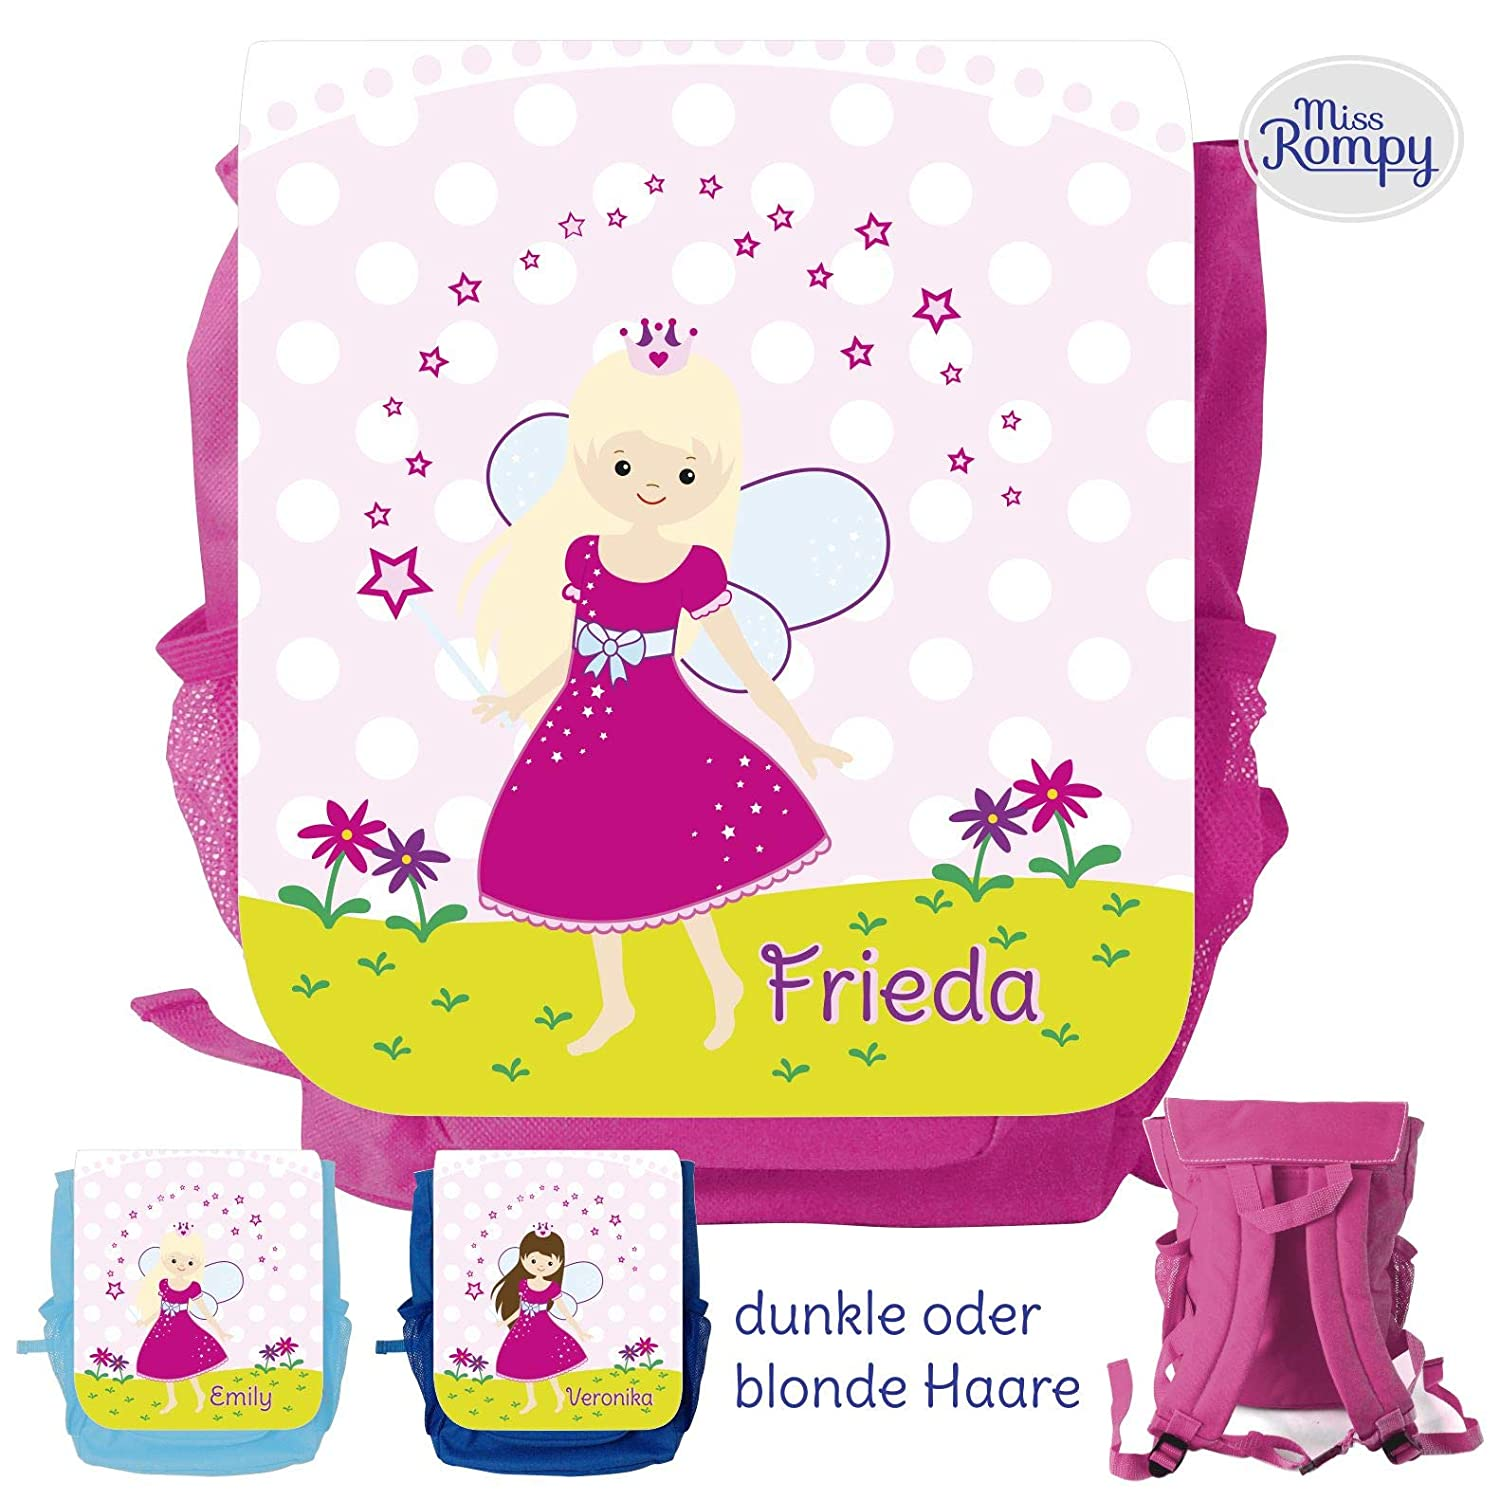 MissRompy Prinzessin (801) Rucksack mit Name Kinderrucksack Kita Kindergartenrucksack Kindertasche